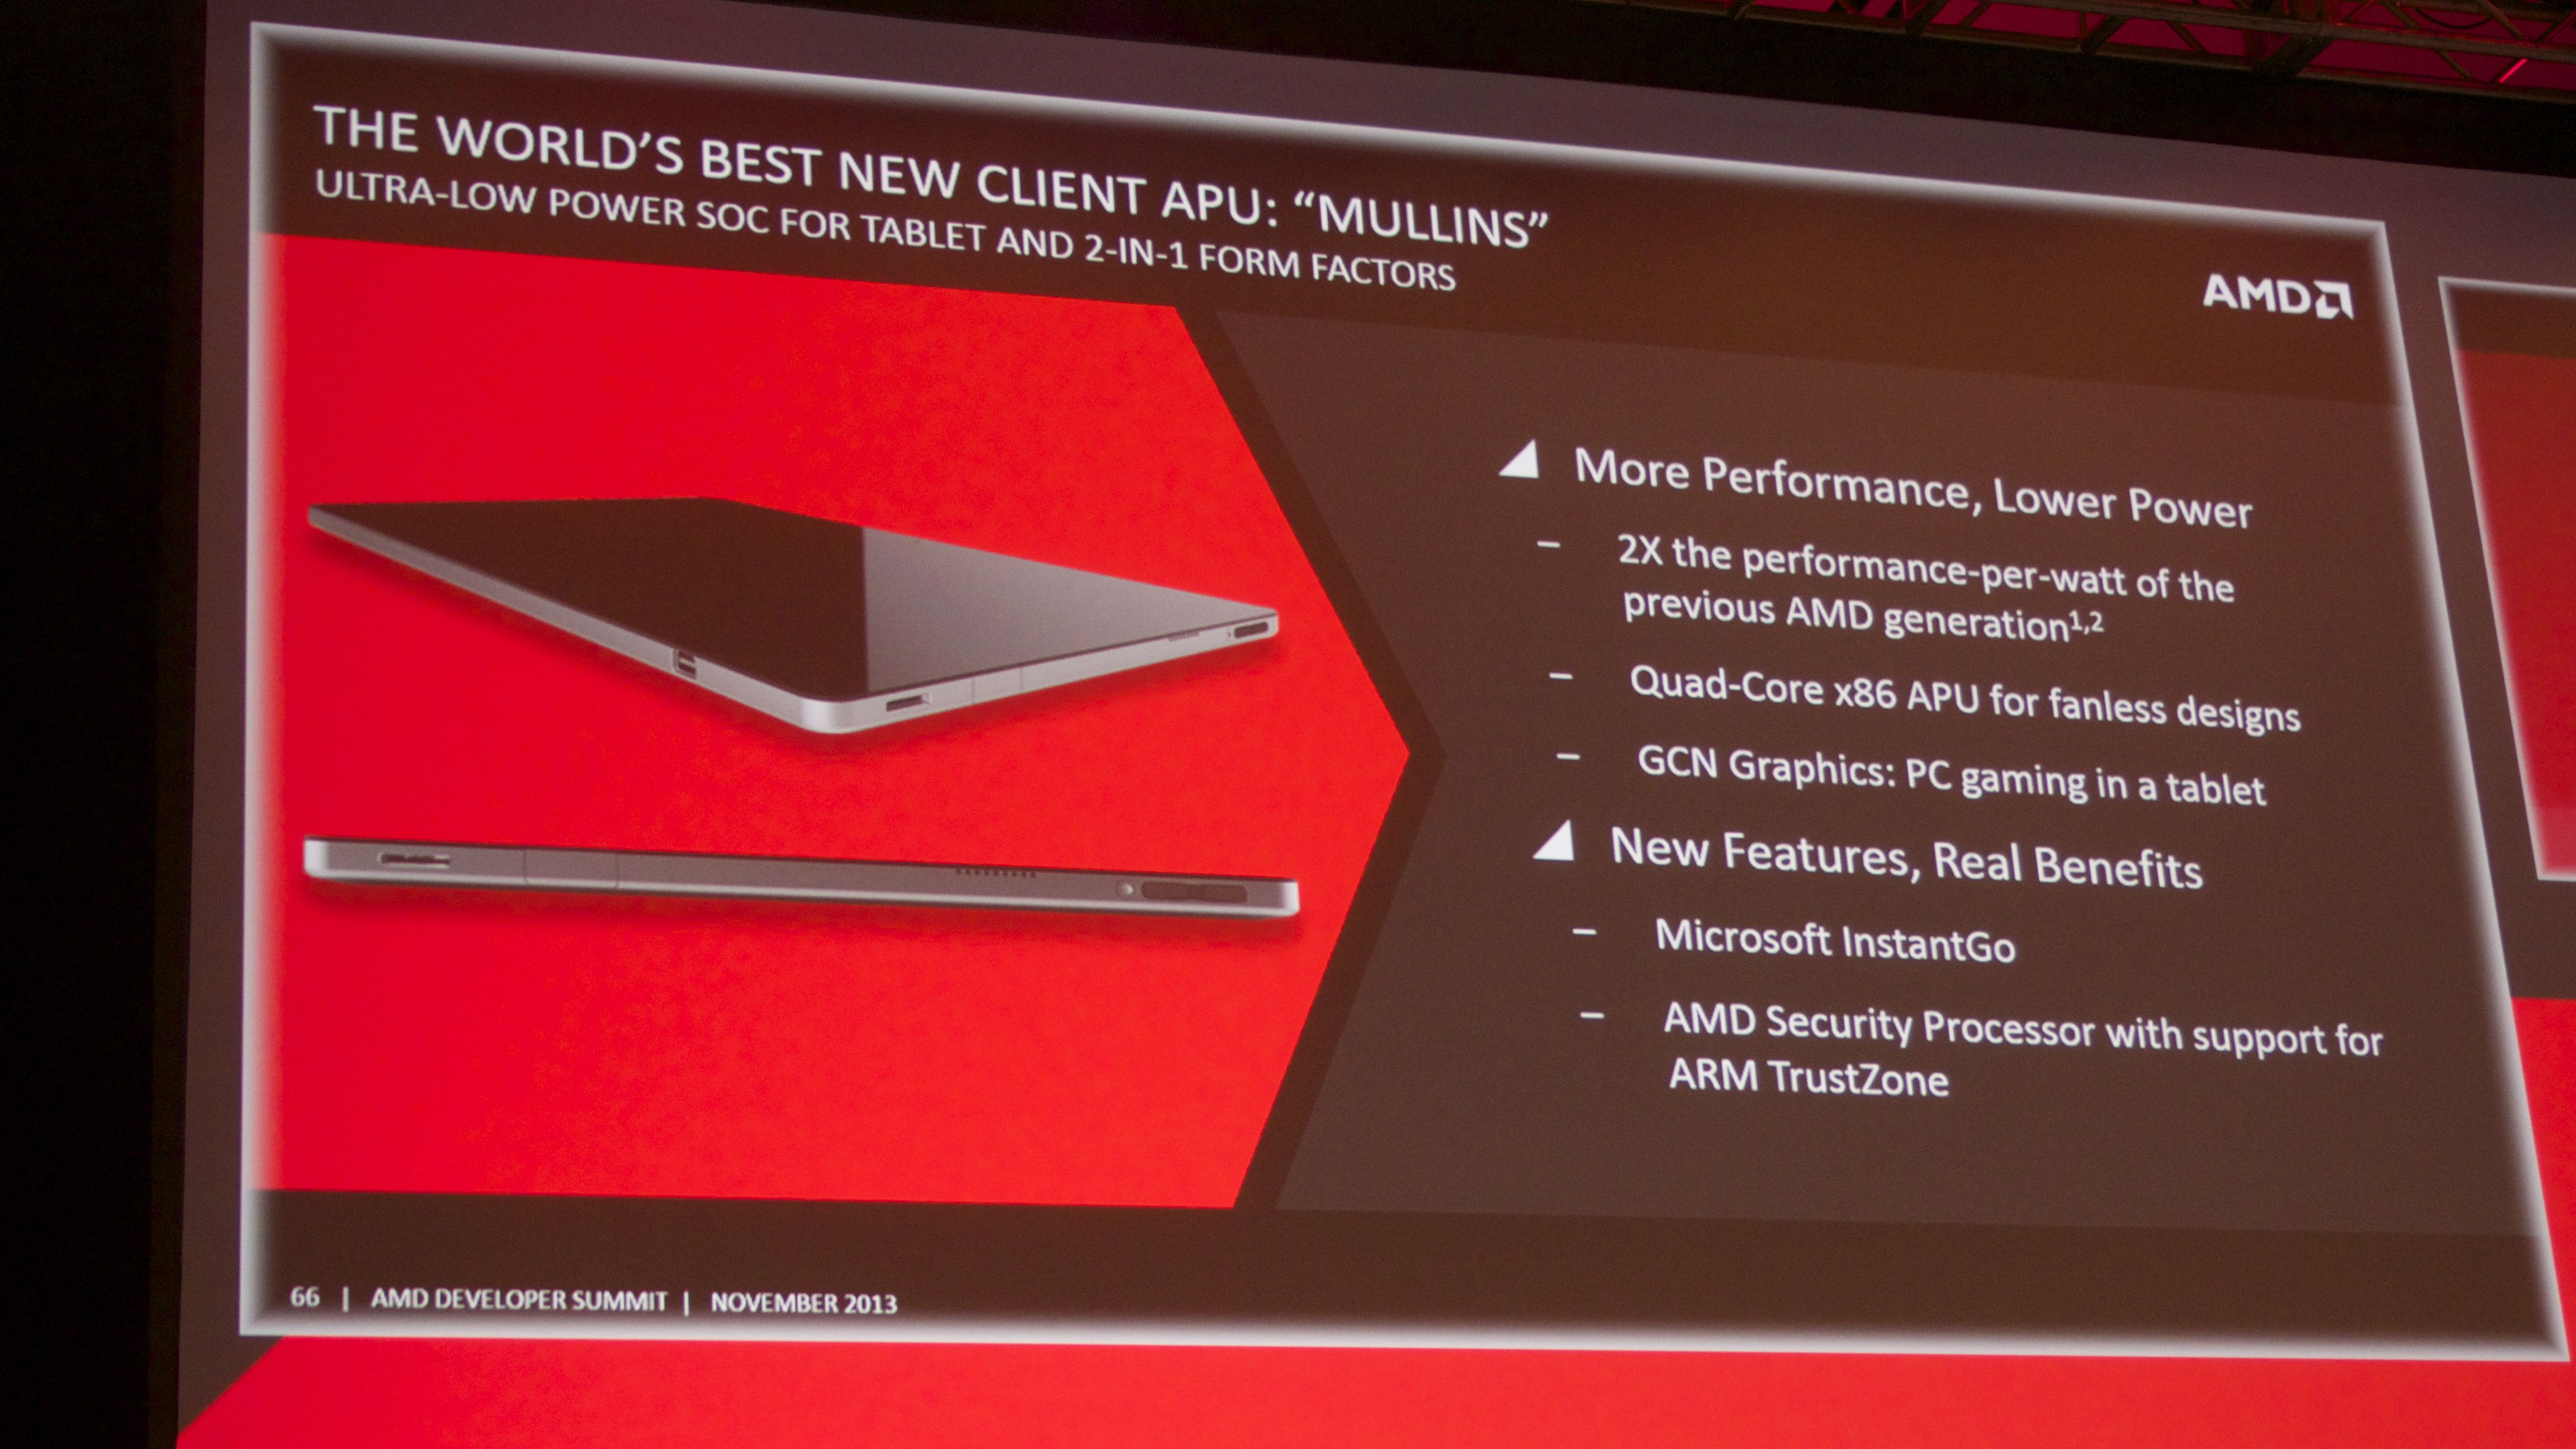 AMD unveils Beema, Mullins APUs for fanless tablets, 2-in-1s and